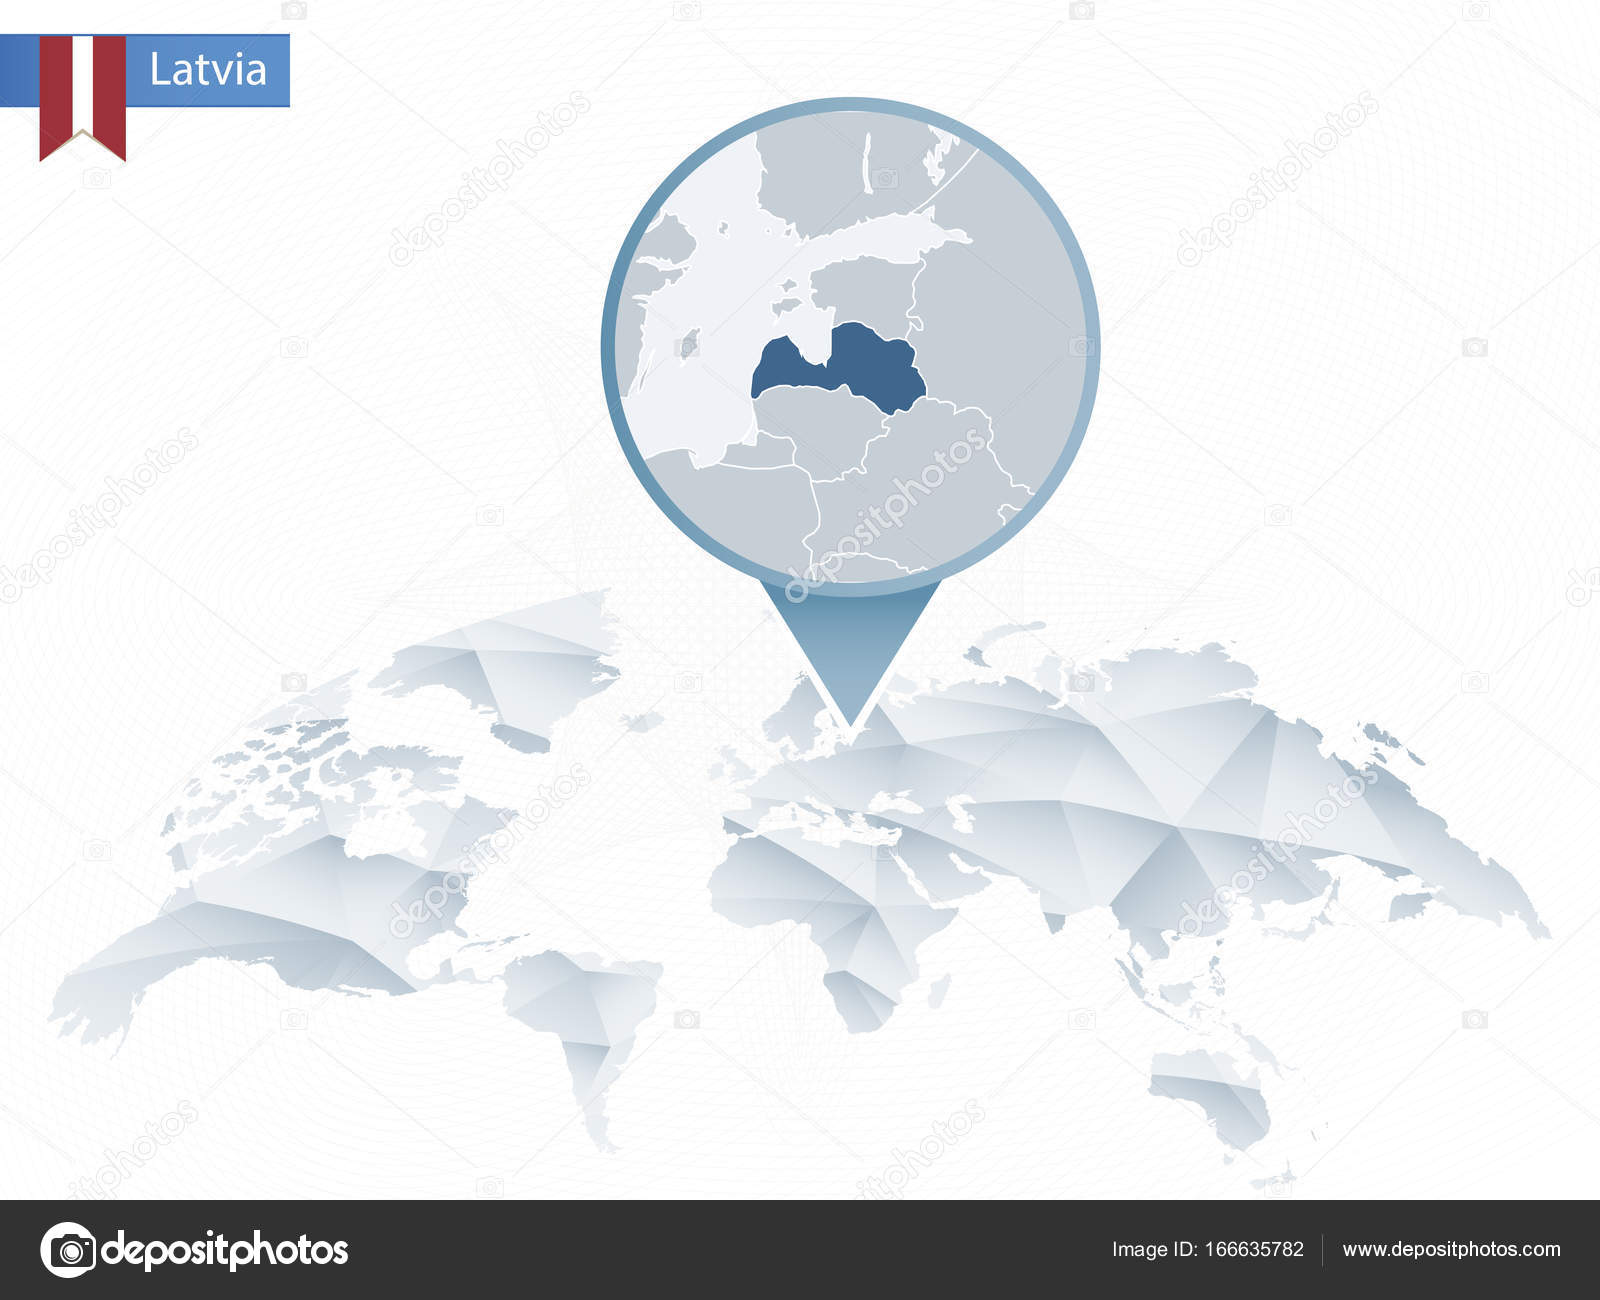 Abstract rounded world map with pinned detailed latvia map stock abstract rounded world map with pinned detailed latvia map map and flag of latvia vector illustration vector by boldg gumiabroncs Images